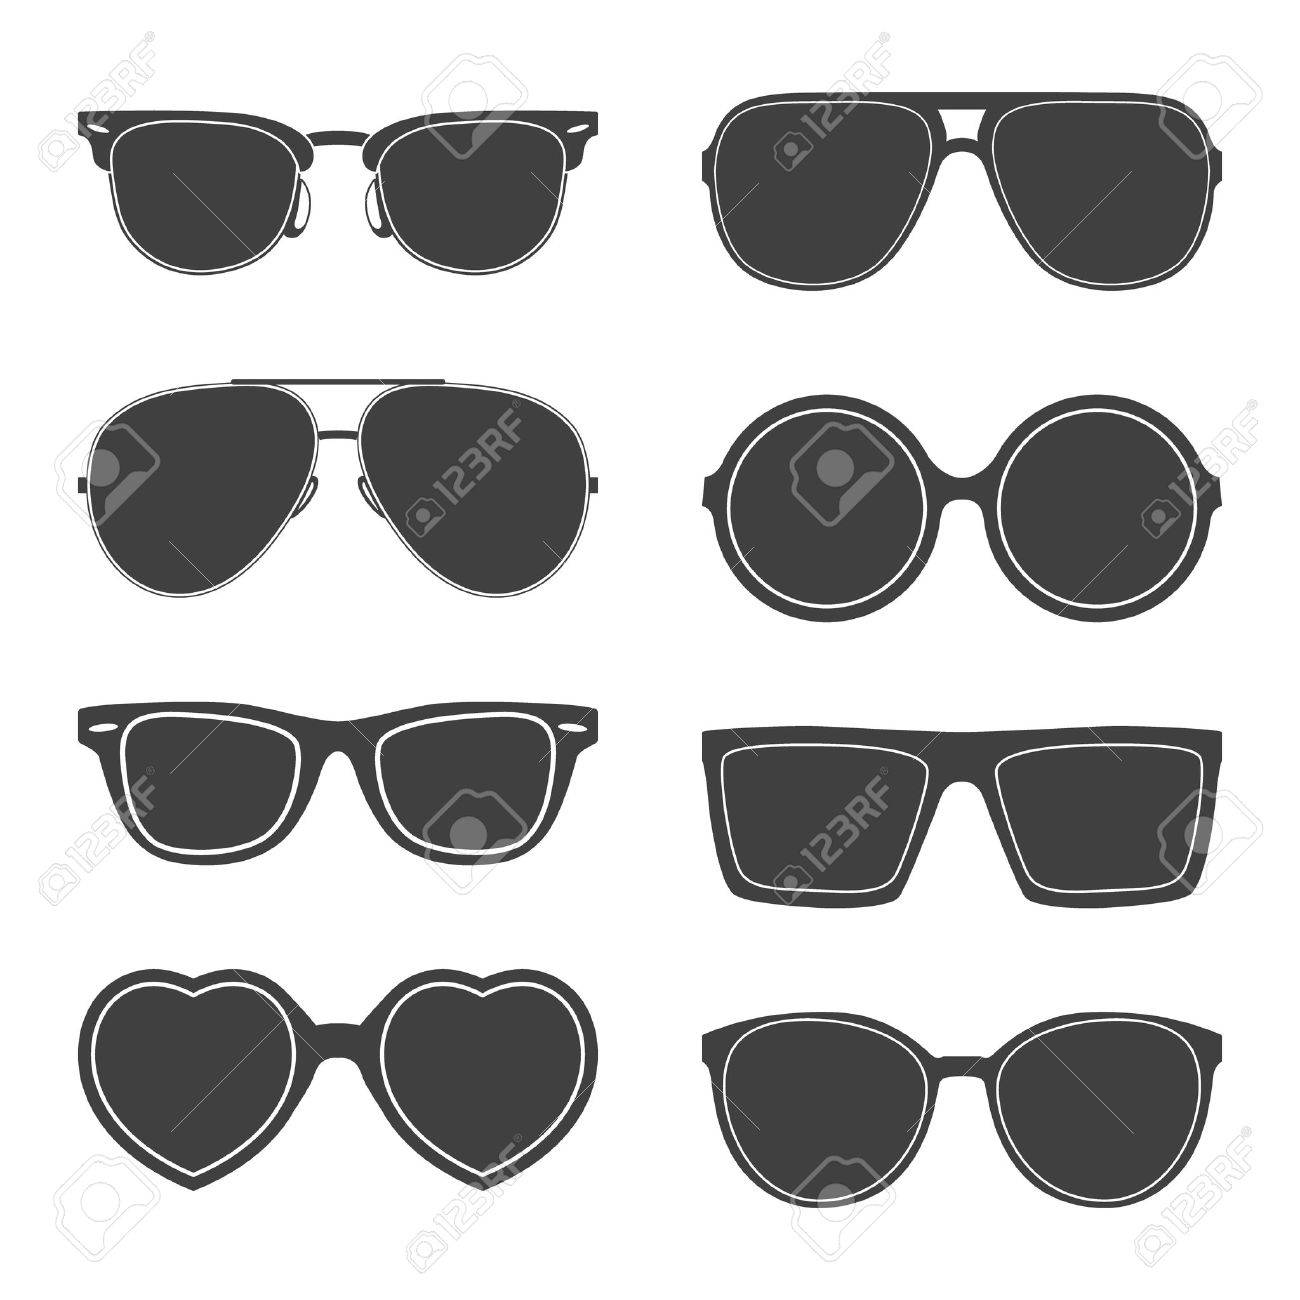 Vector set of sunglasses silhouettes. - 40899510